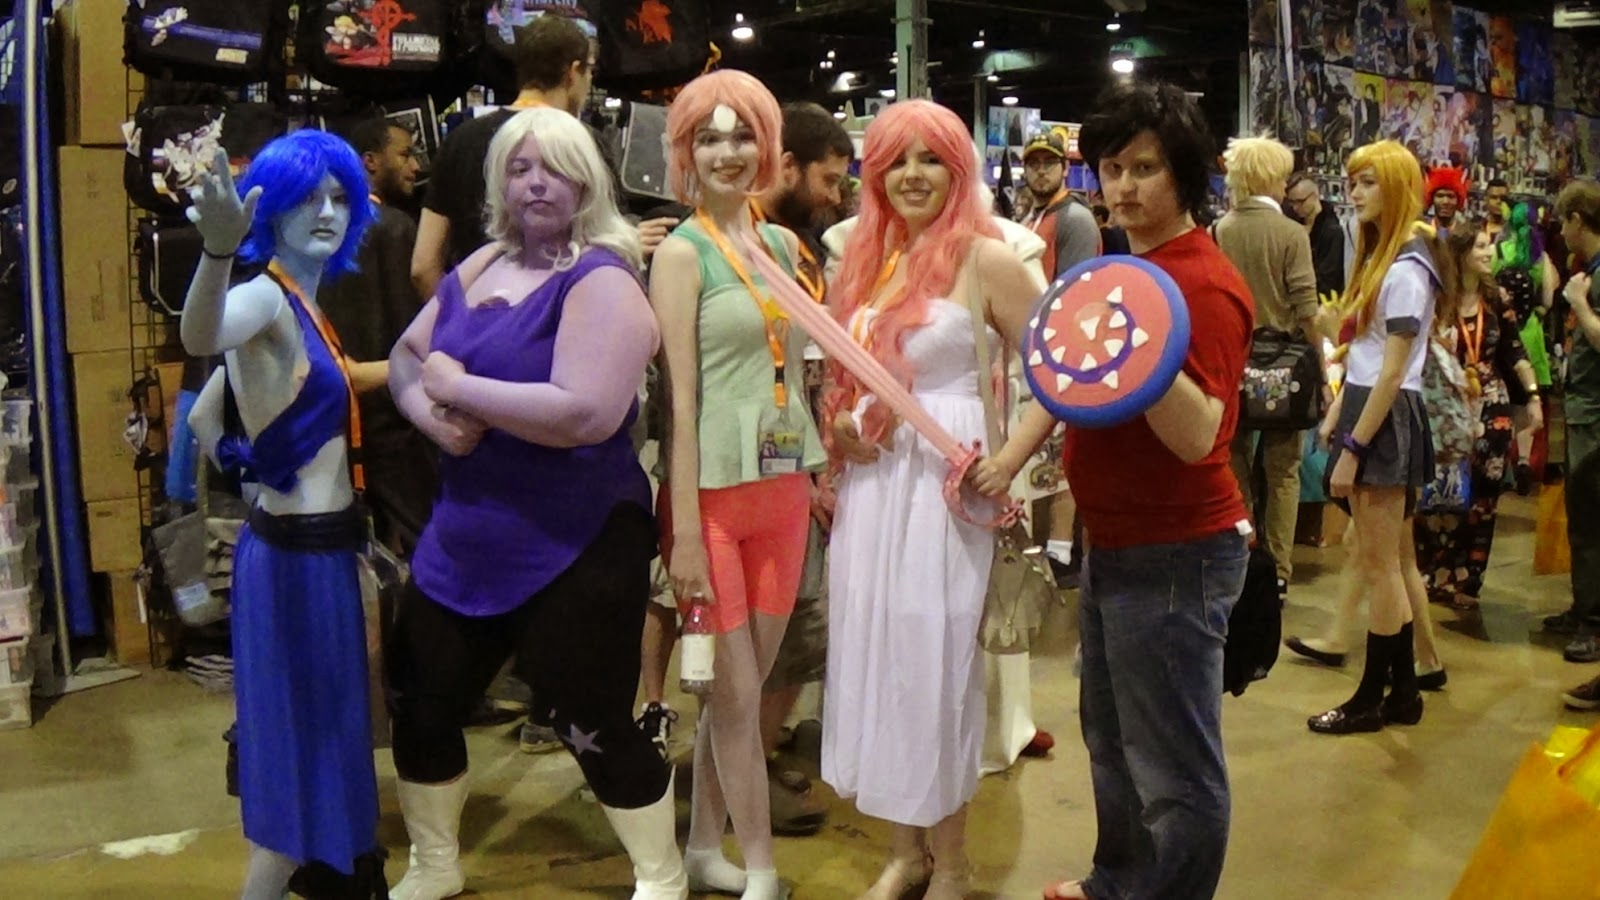 Some pics of awesome cosplayers at anime central